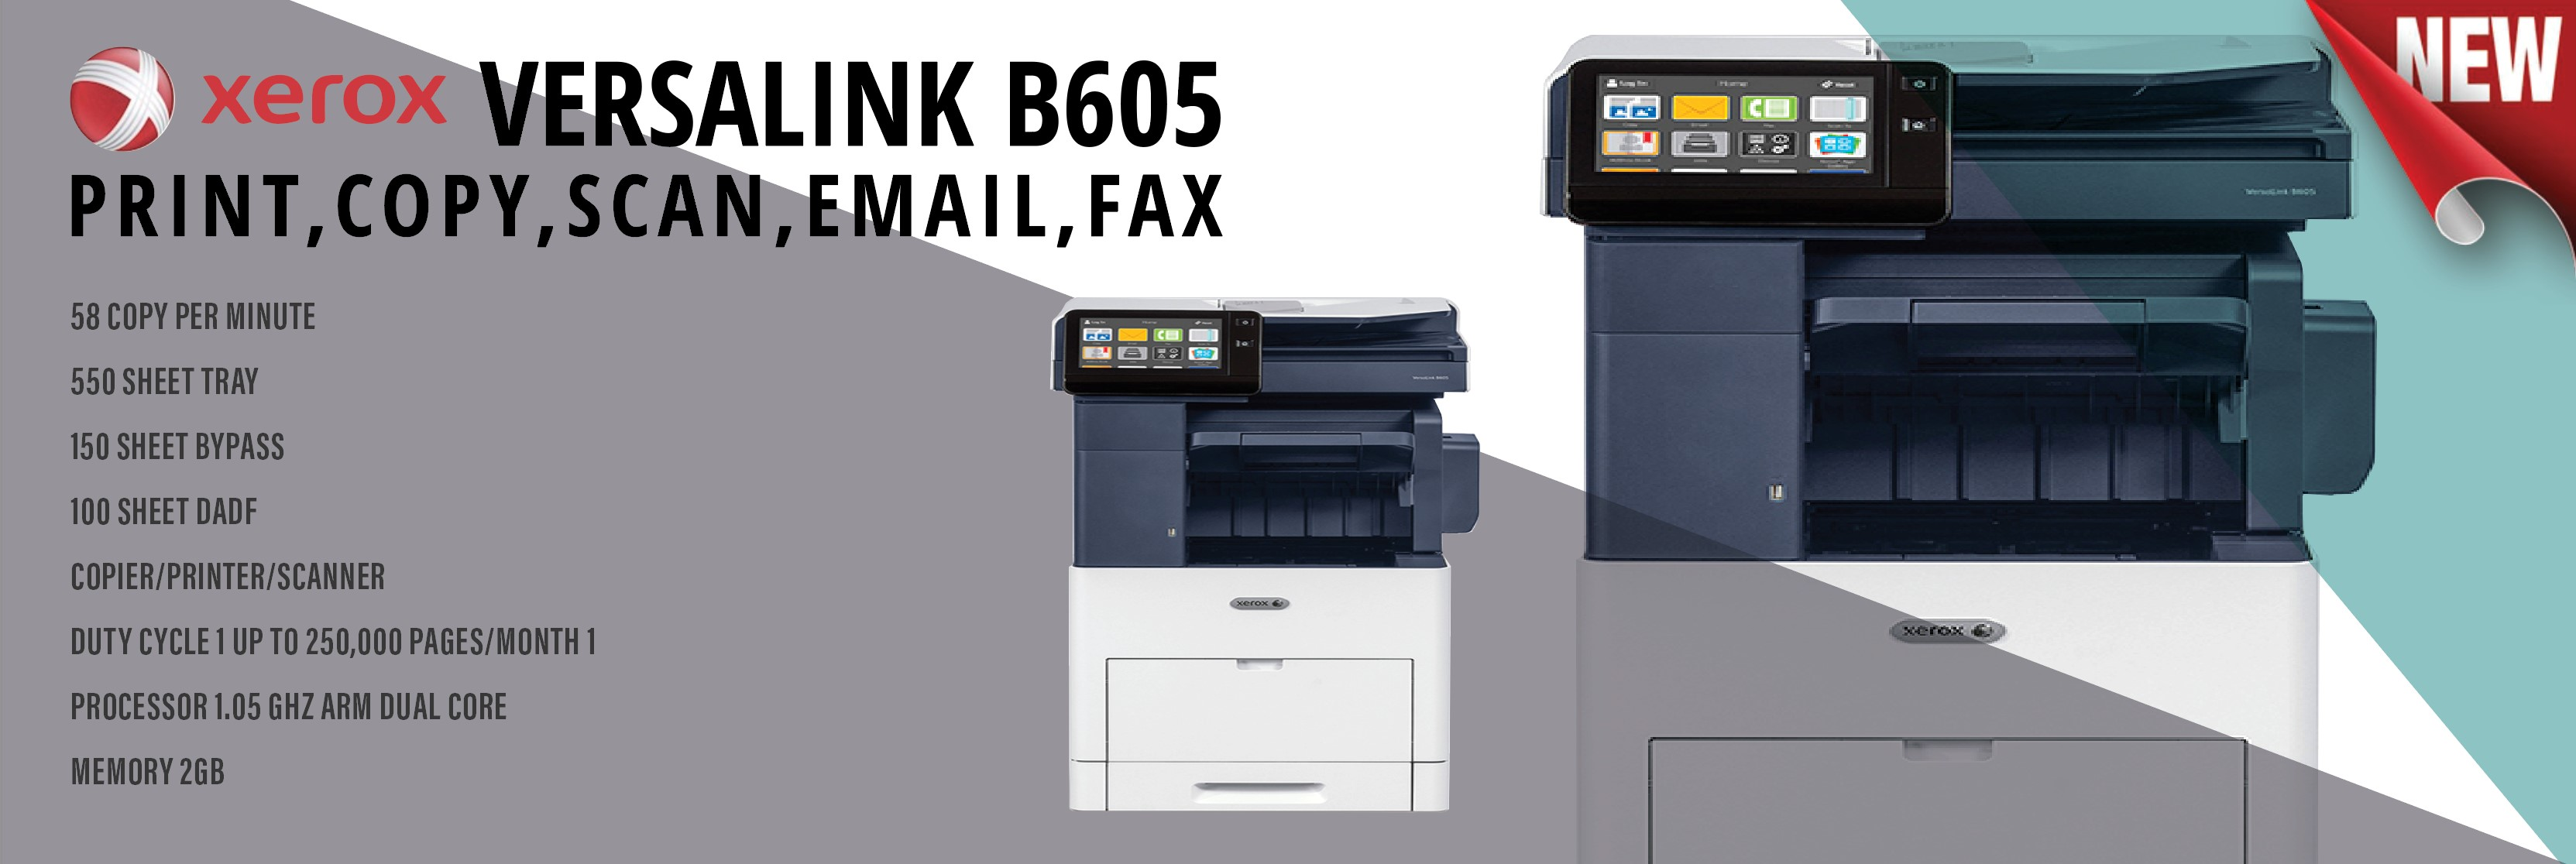 Xerox VersaLink B605 Printer